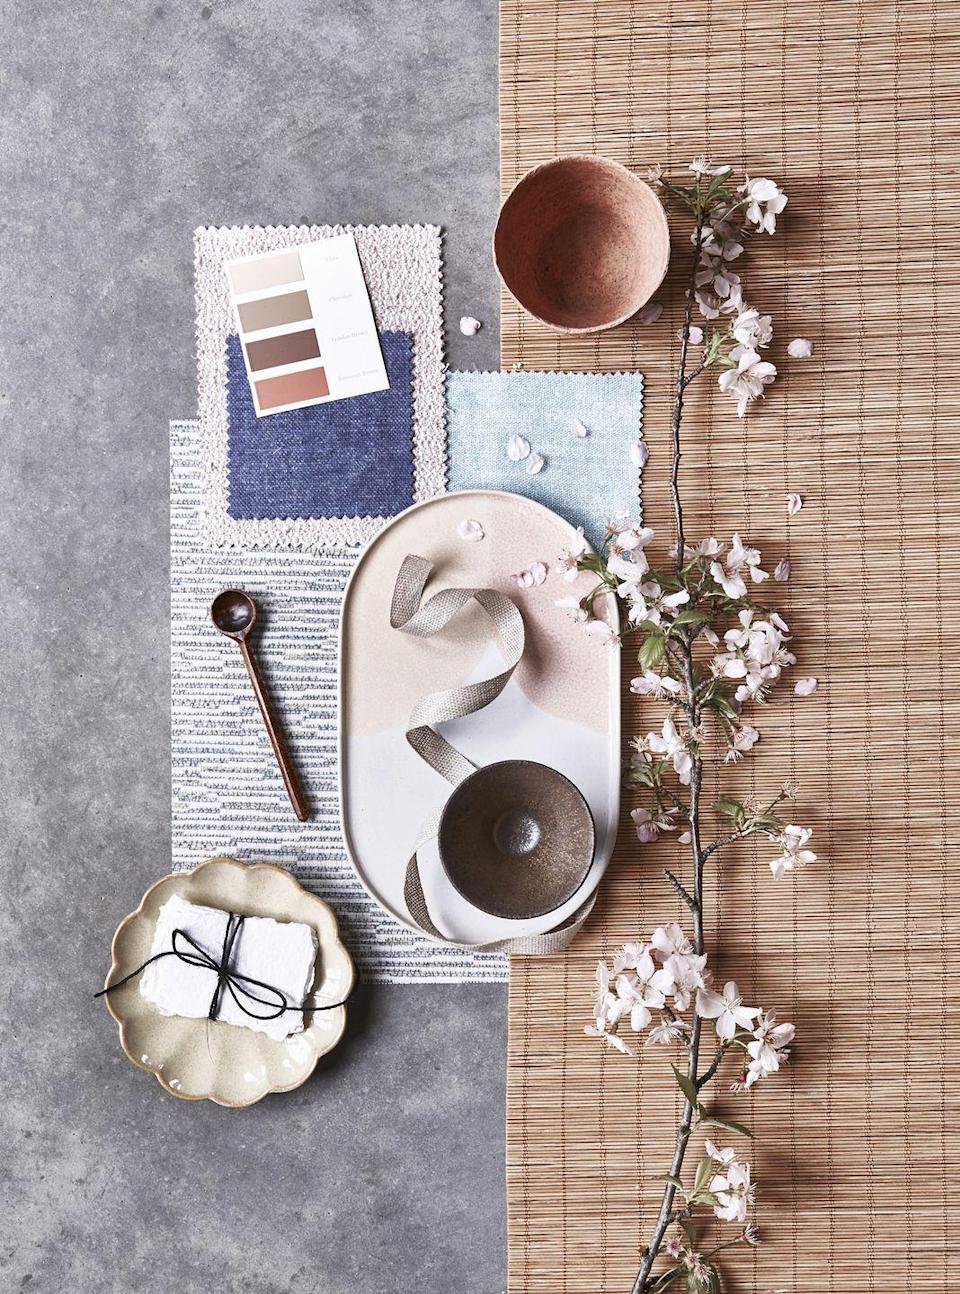 """<p>It's all about natural textures, beautiful details and the most delicate of shades to recreate this easy-to- live with Japanese Scandi fusion.</p><p>READ MORE: <strong><a href=""""https://www.housebeautiful.com/uk/decorate/a35383663/how-to-make-moodboard/"""" rel=""""nofollow noopener"""" target=""""_blank"""" data-ylk=""""slk:How to make a moodboard: an interior stylist's 6 top tips to help you plan your perfect scheme"""" class=""""link rapid-noclick-resp"""">How to make a moodboard: an interior stylist's 6 top tips to help you plan your perfect scheme</a></strong></p>"""